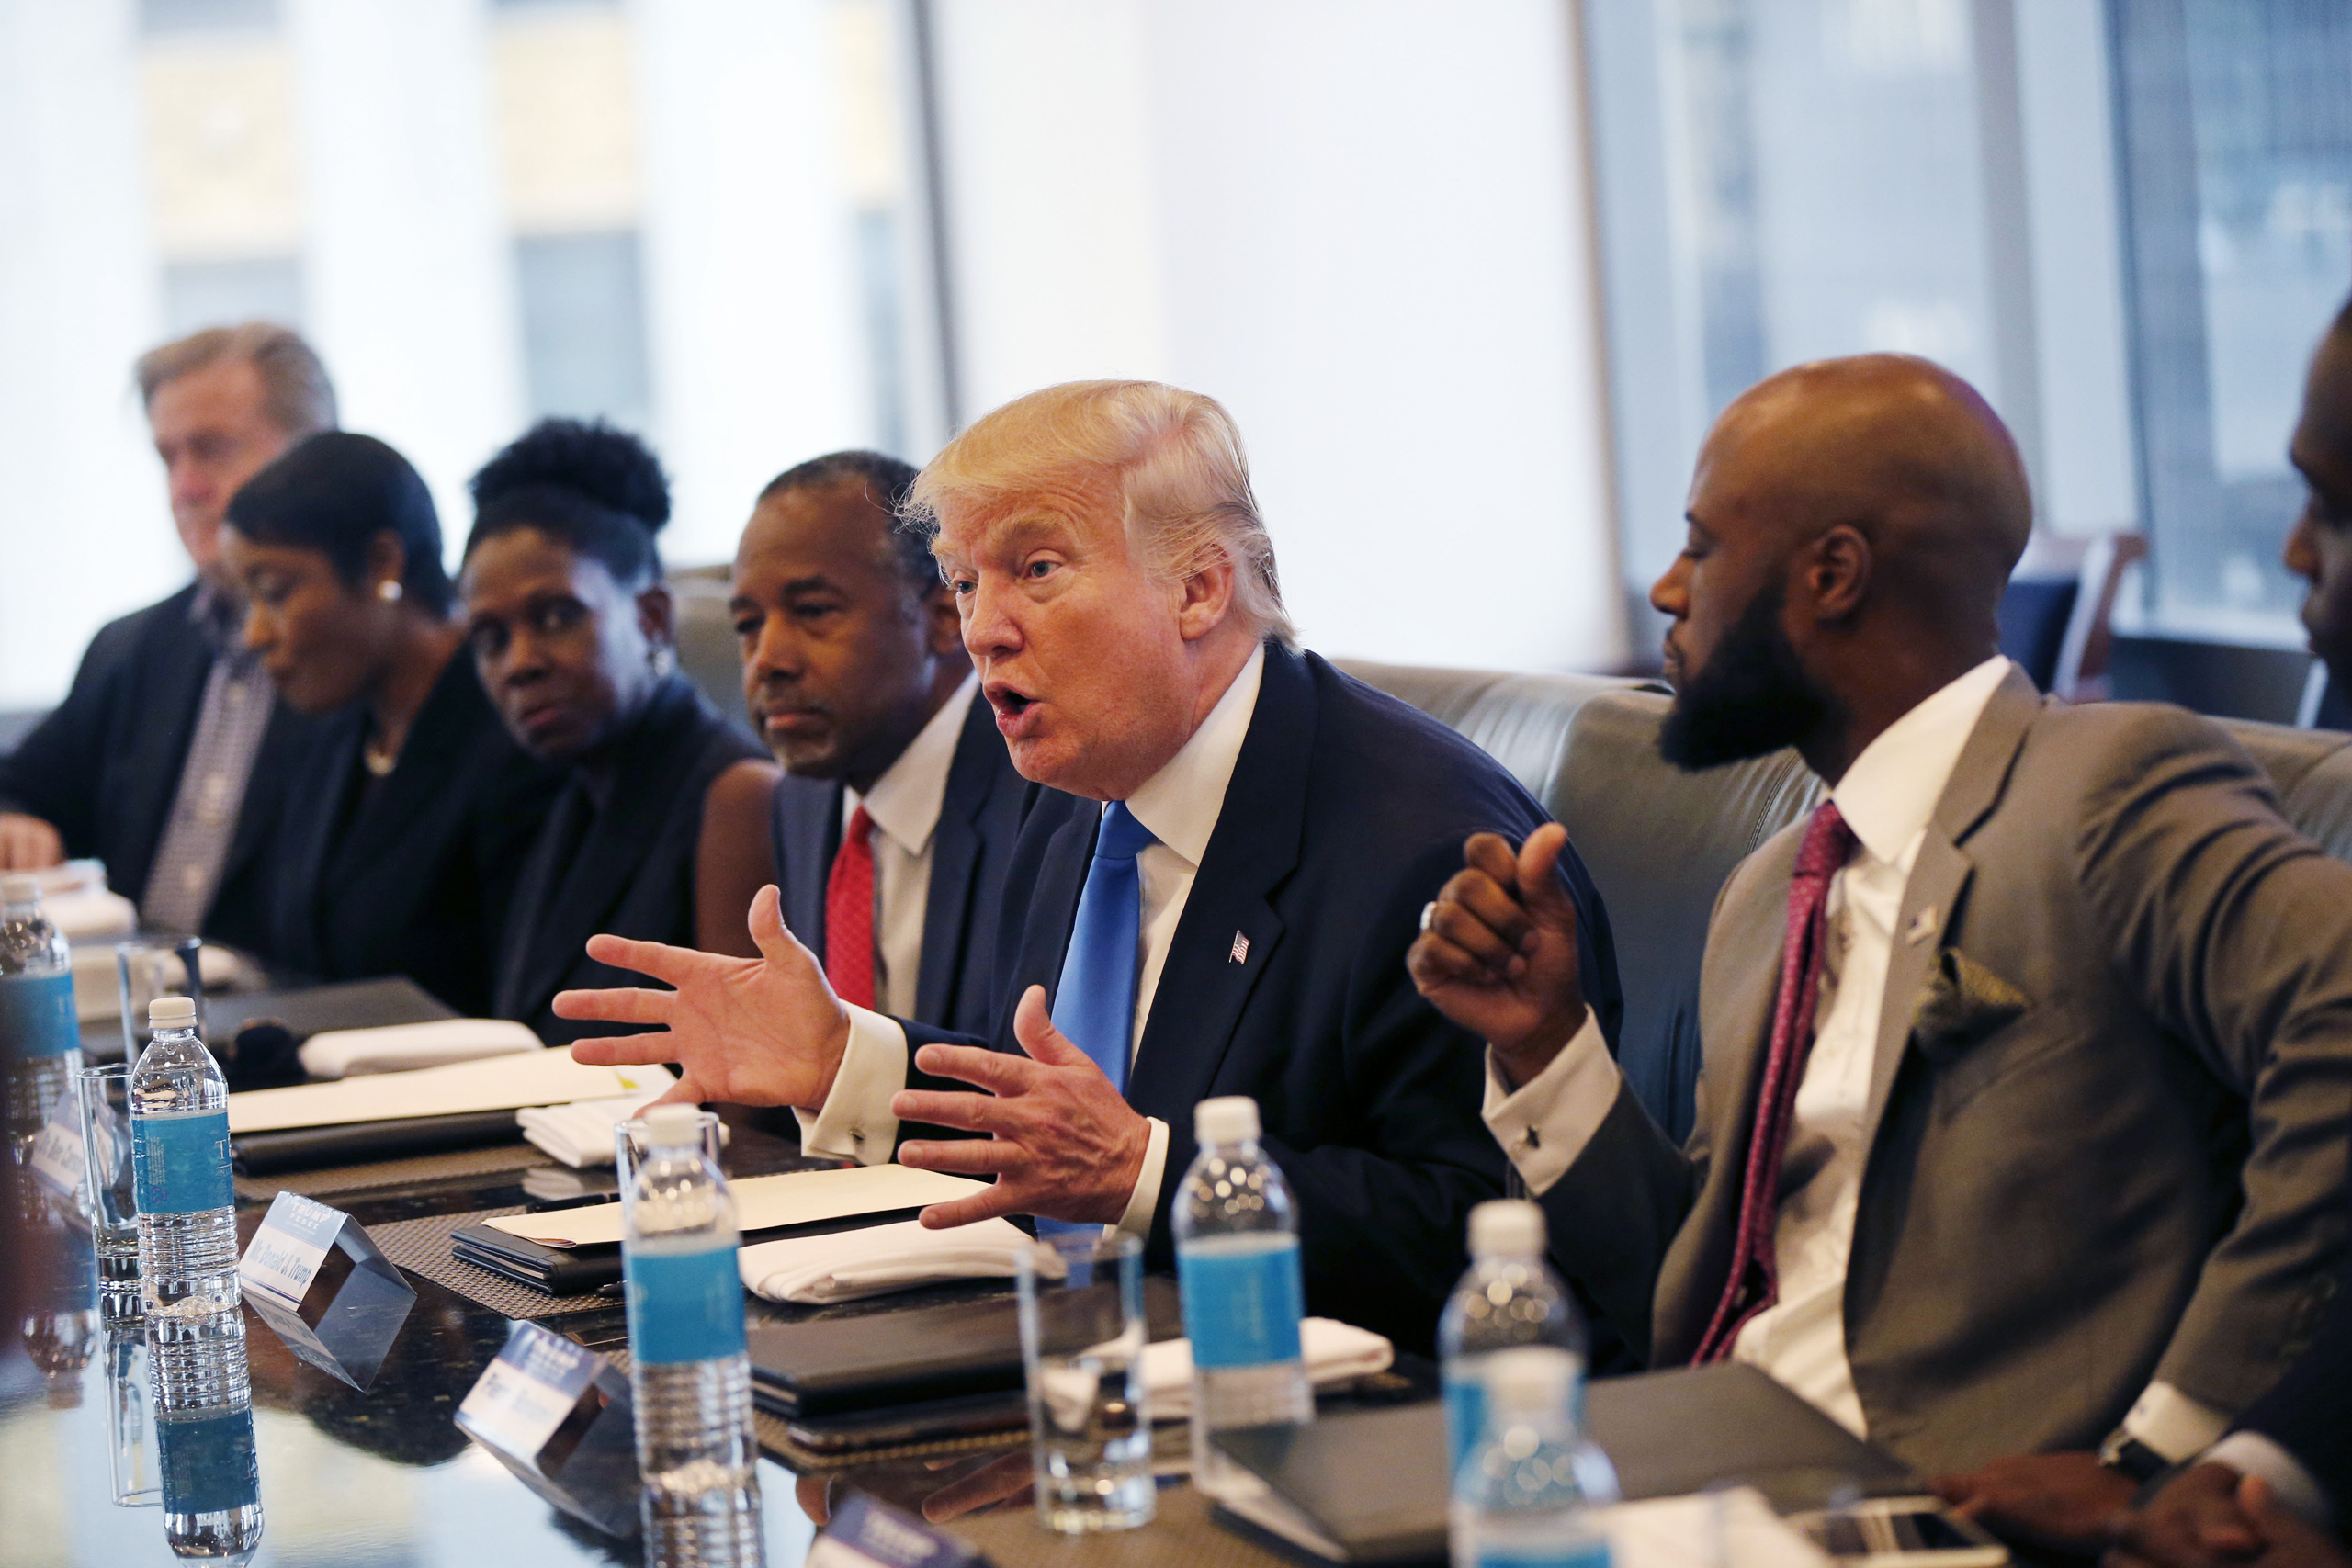 Republican presidential candidate Donald Trump holds a roundtable meeting with the Republican Leadership Initiative in his offices at Trump Tower in New York City on Aug. 25, 2016.